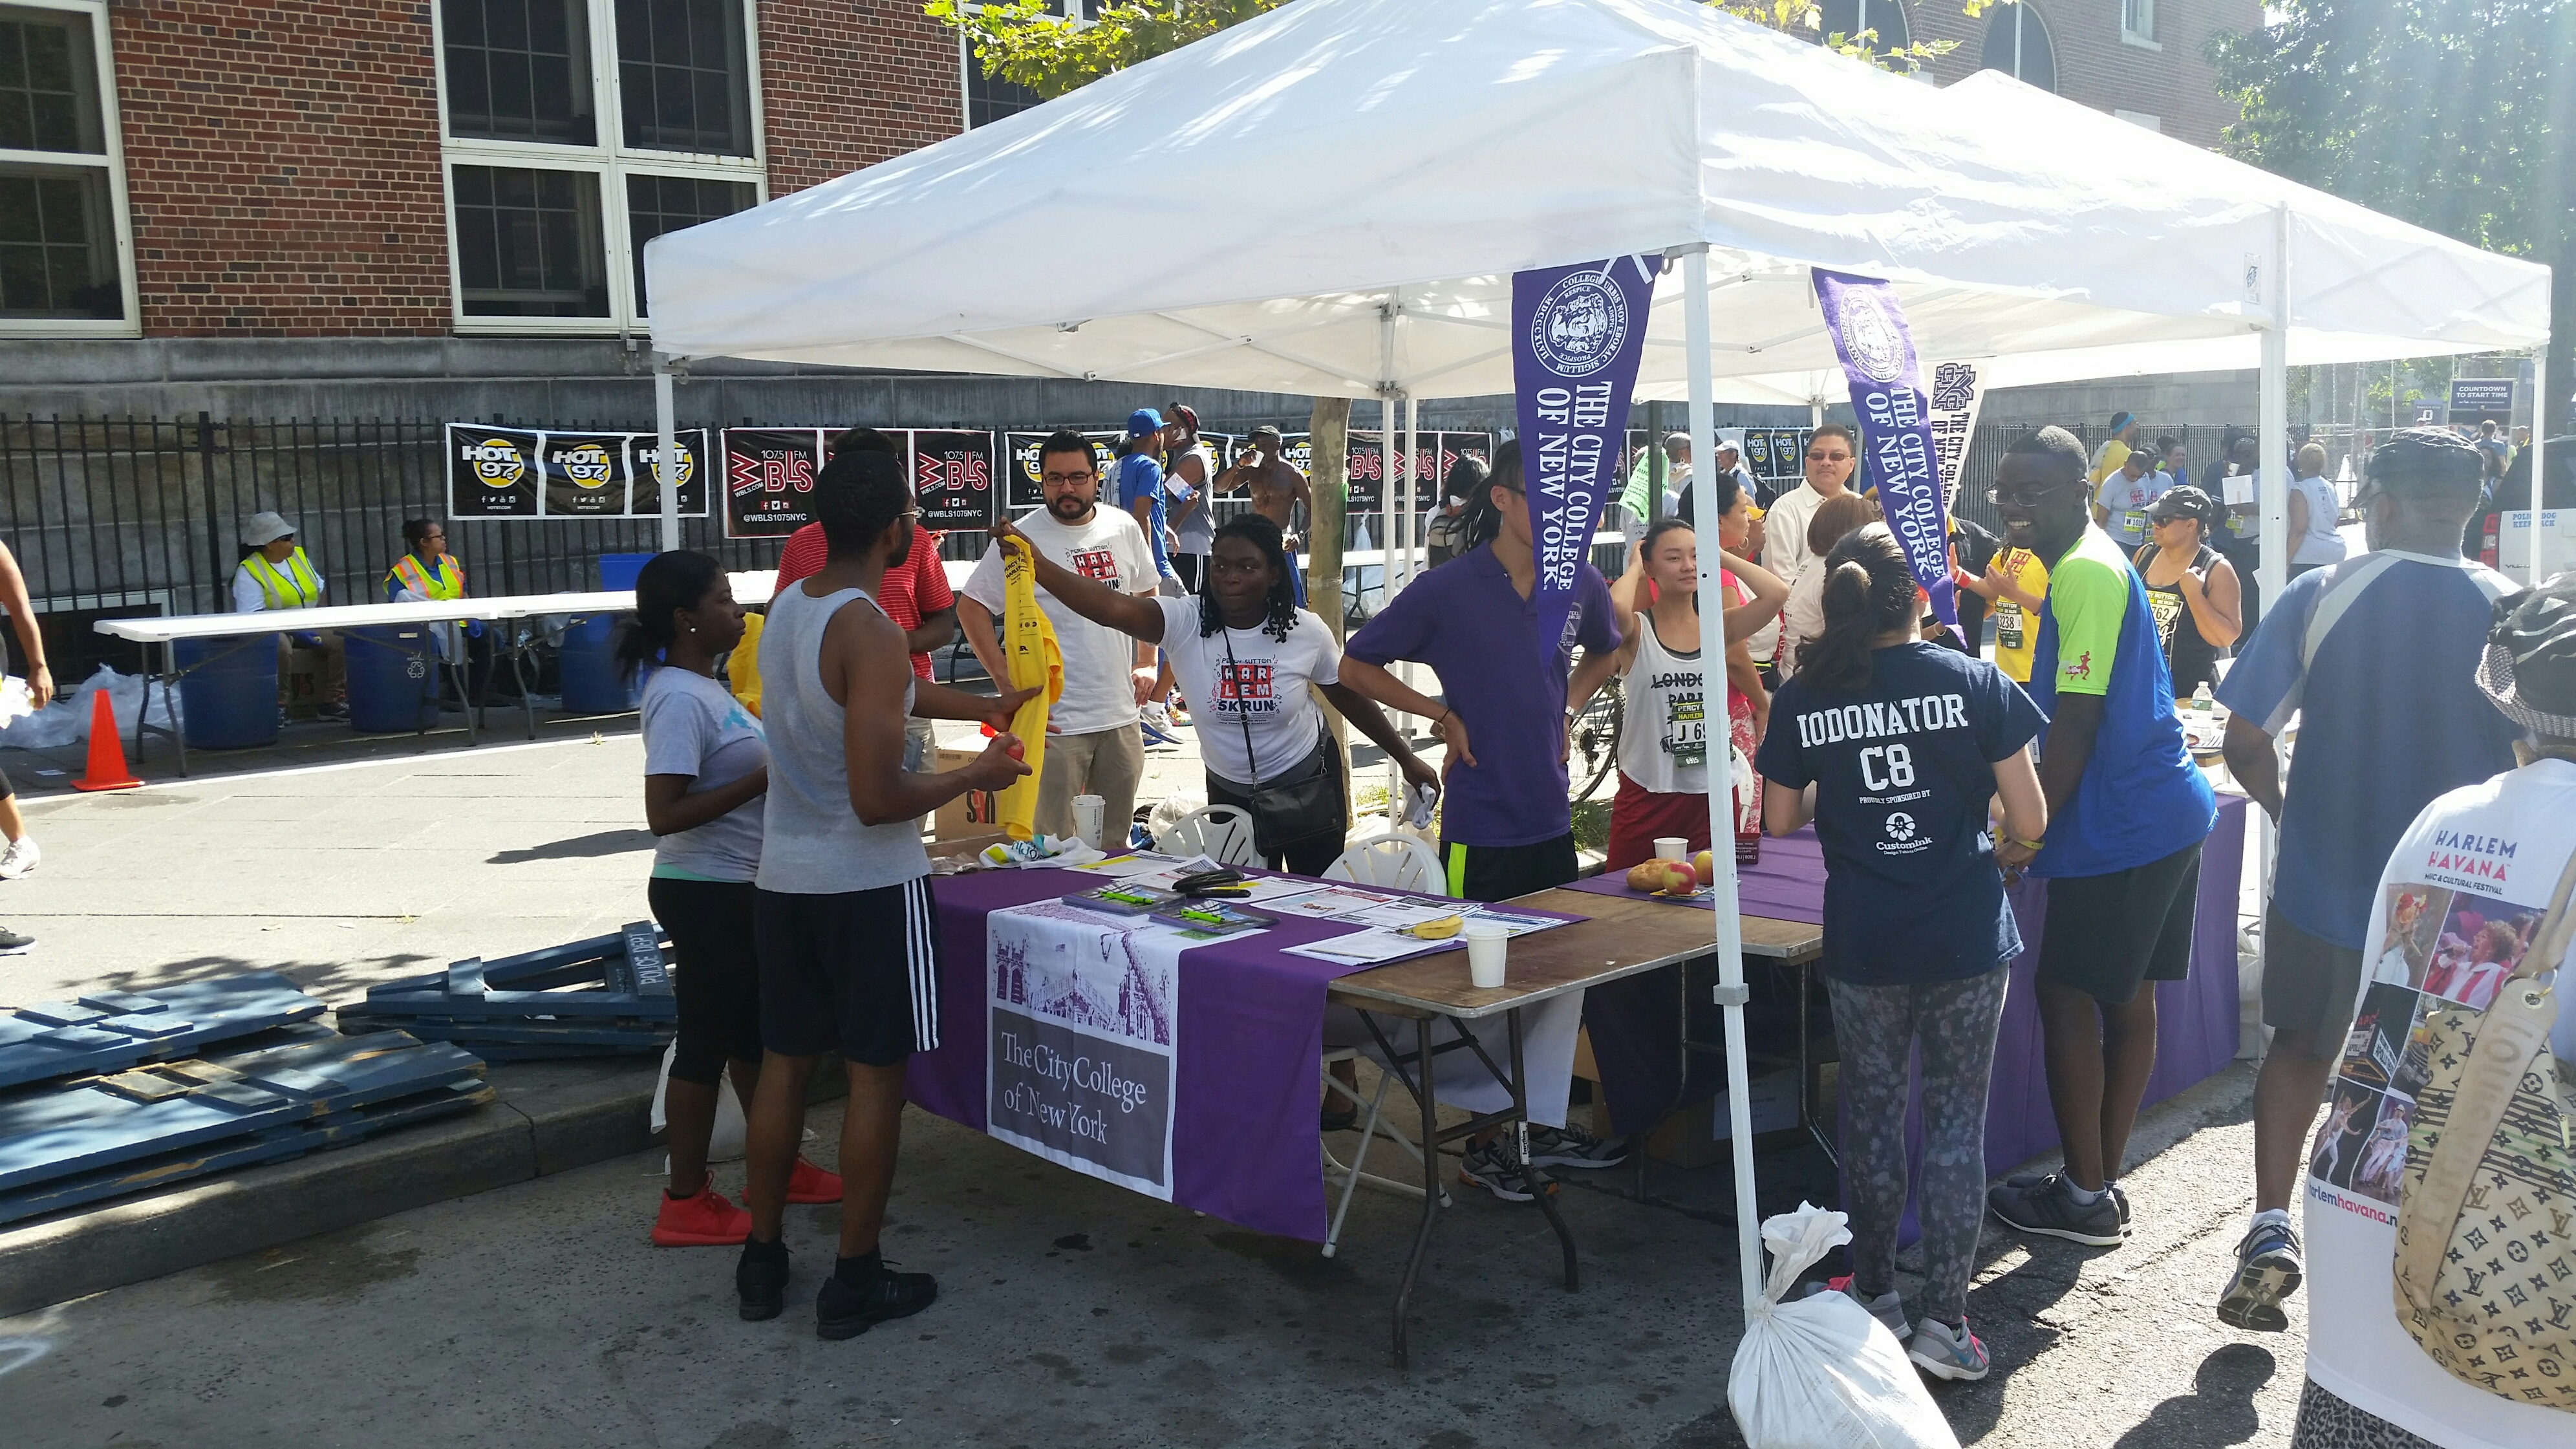 CCNY participants gather around the information booth.